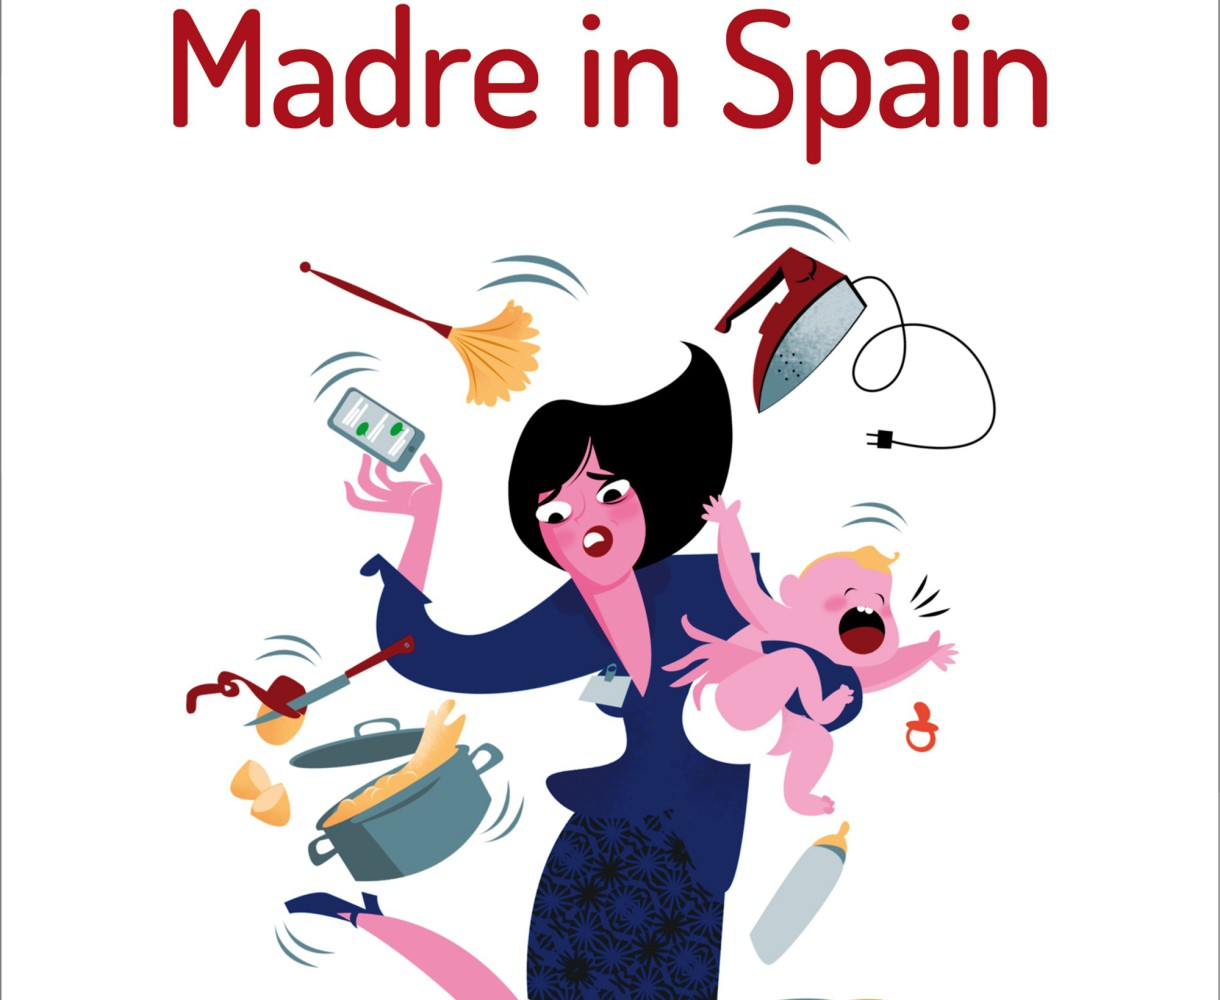 Libro: Madre in Spain